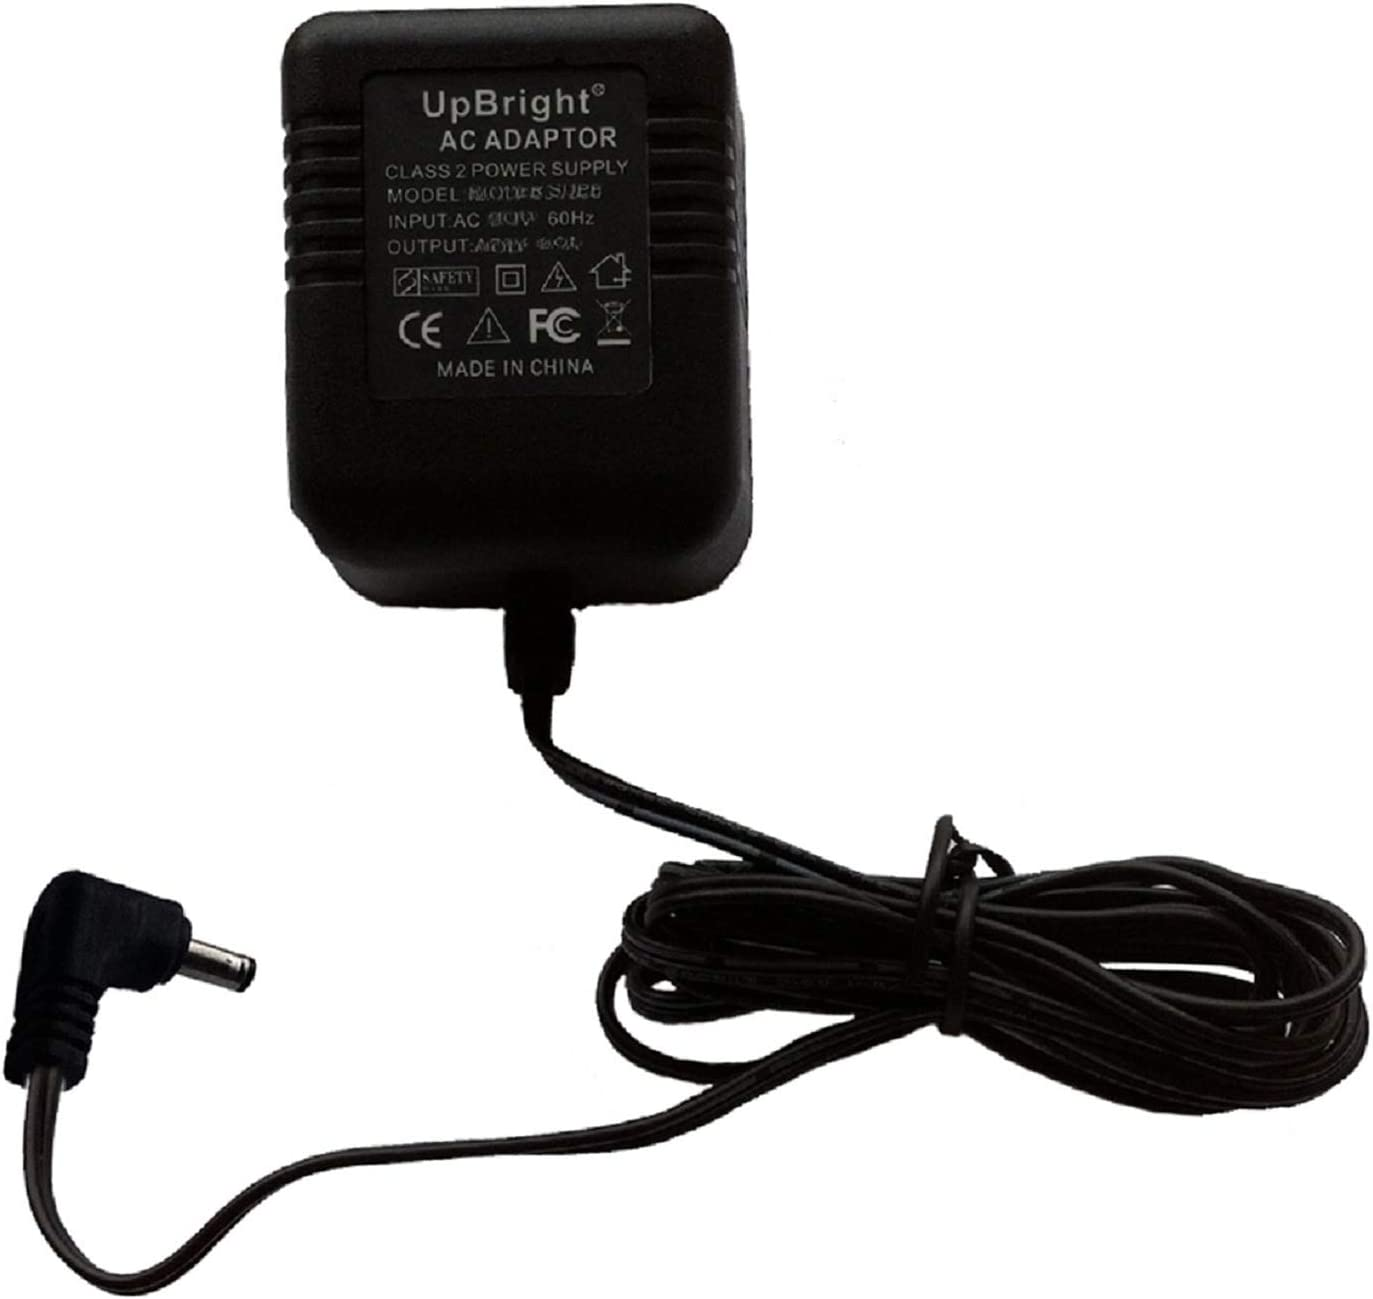 UpBright 7.5V AC/AC Adapter Replacement for Model U075035A12V 26-175035-1UL-100 AT&T Uniden Vtech CA Cyber Acoustics U075035A12 AC7.5V 350mA 7.5VAC 0.35A -1A Class 2 Power Supply Battery Charger PSU